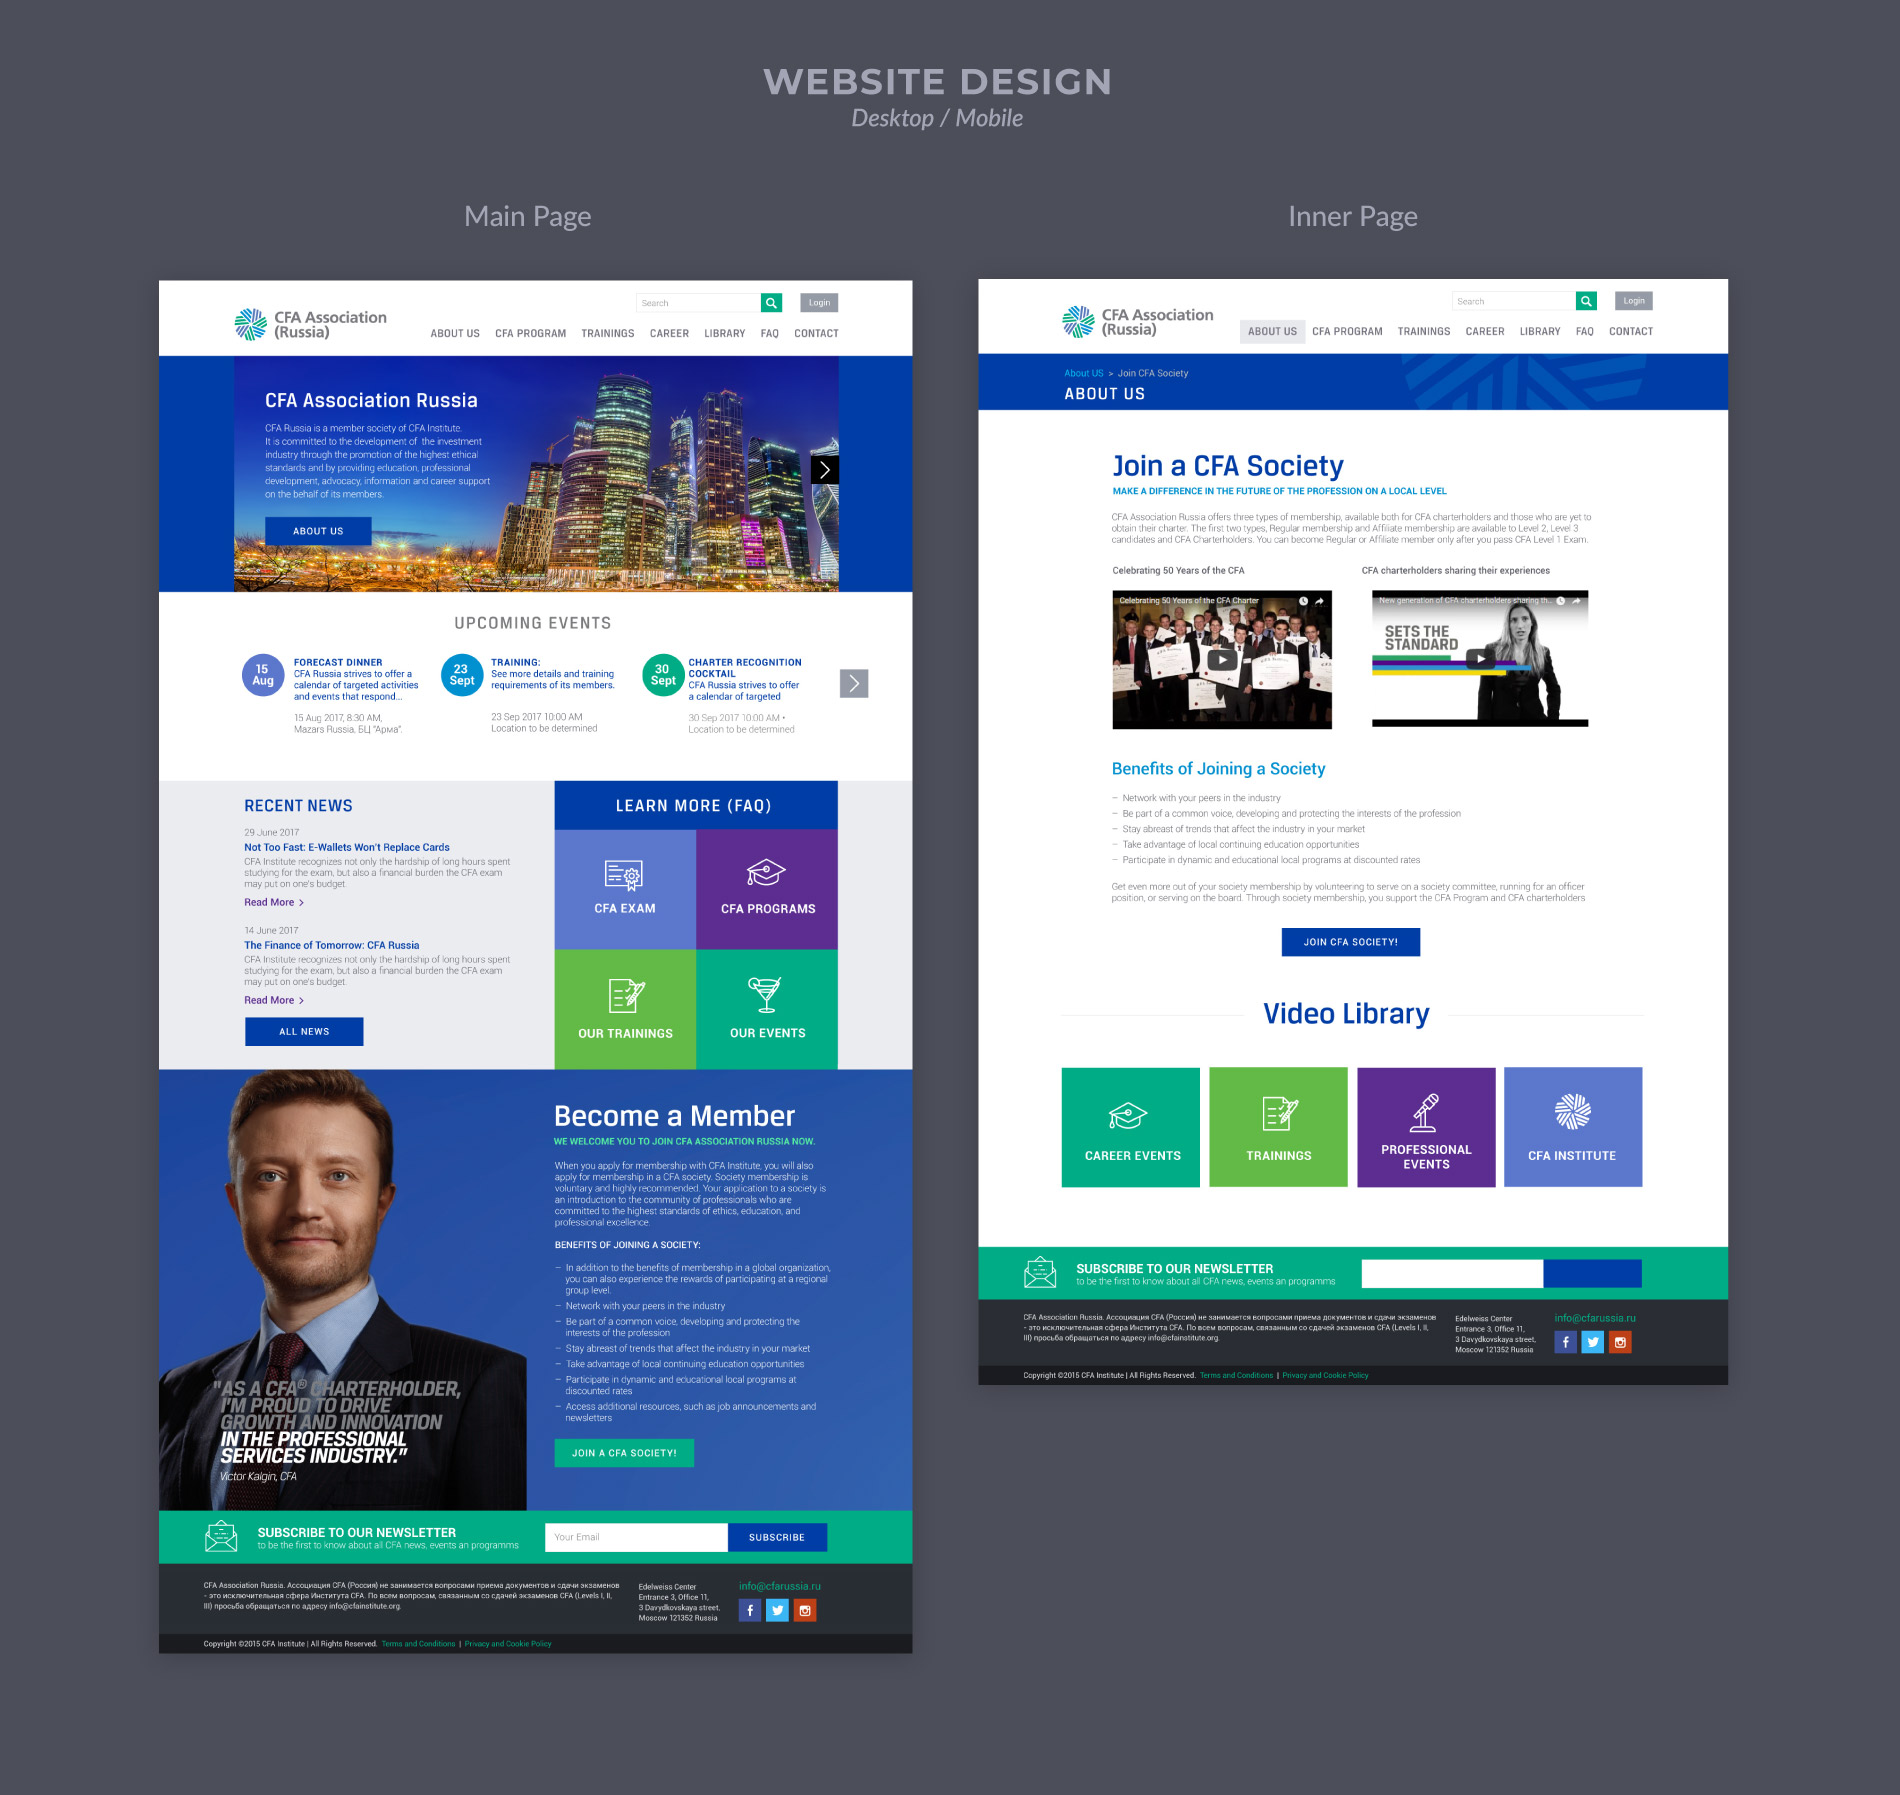 Business association website design: main page, inner page.